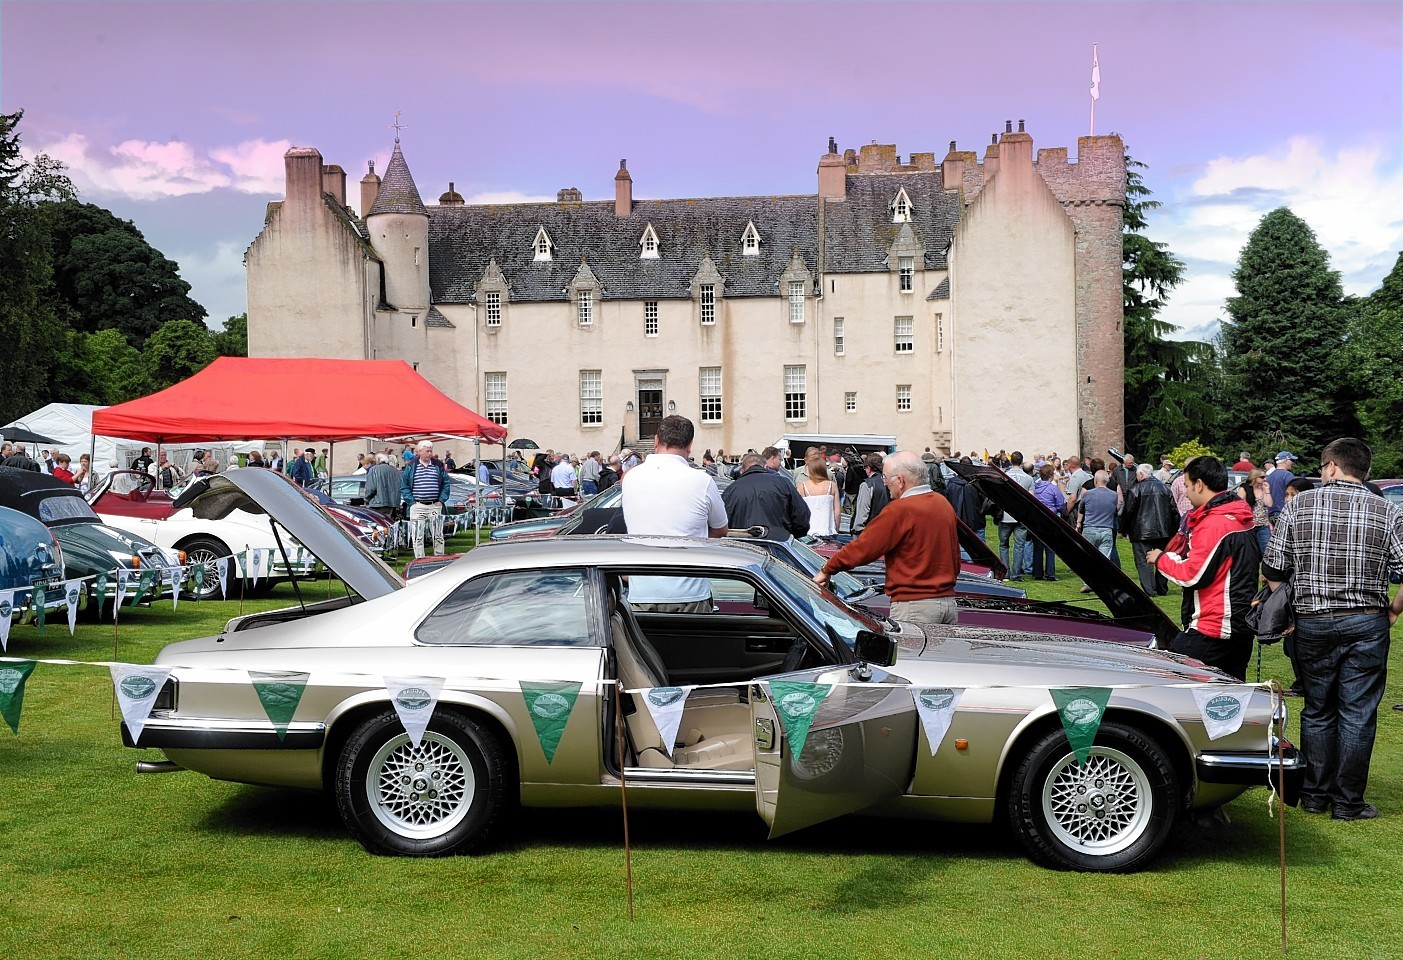 Jaguars and Daimlers on display at last year's Annual Gathering and Car Show at Drum Castle, near Banchory